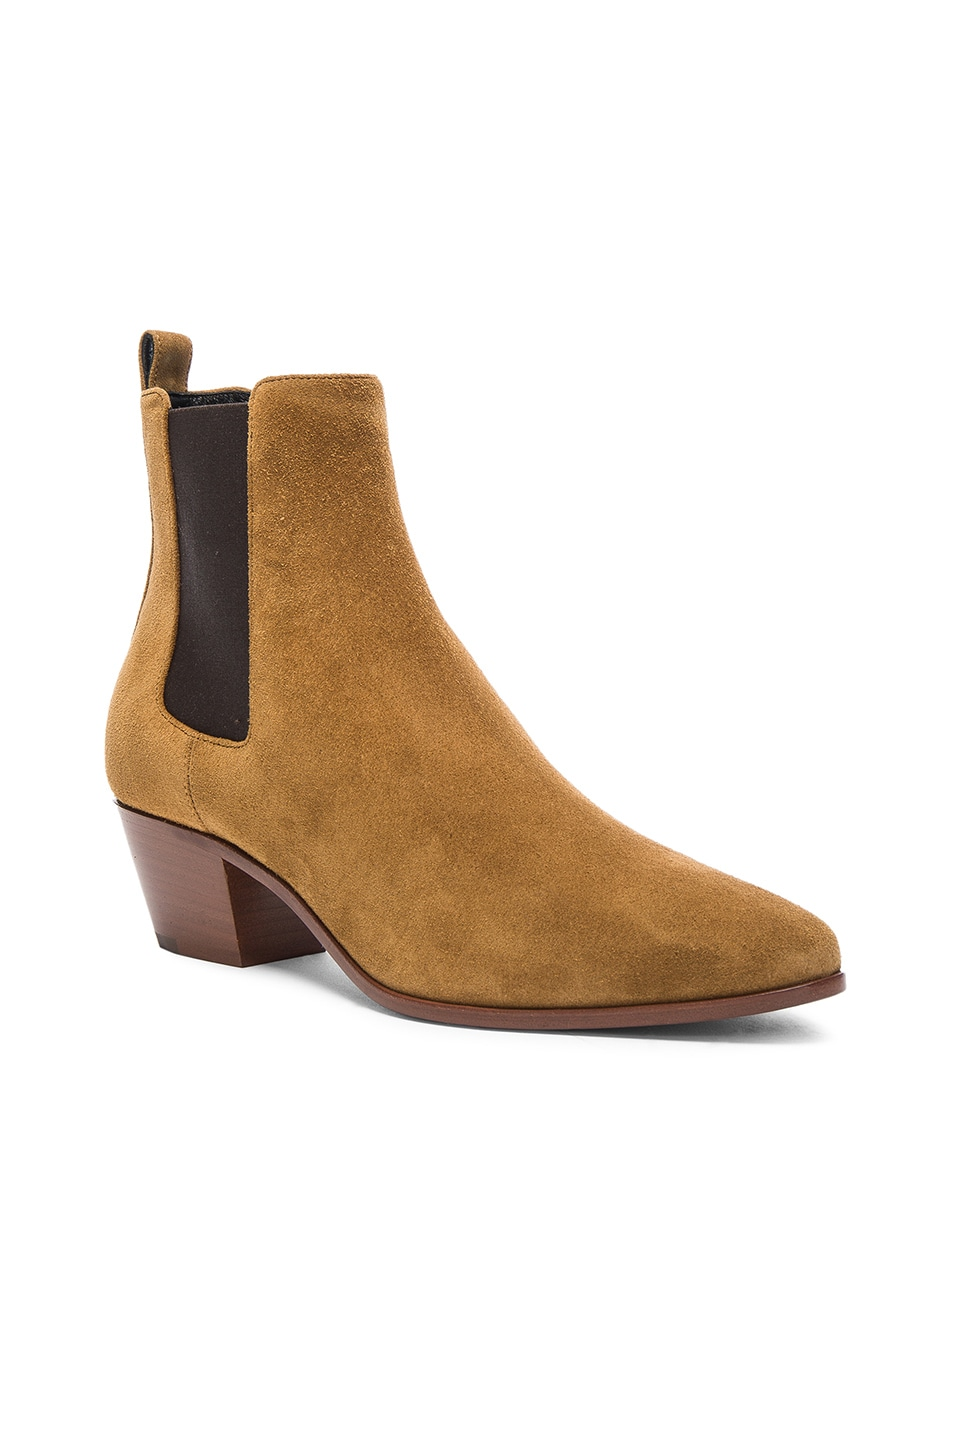 Image 2 of Saint Laurent Suede Rock Chelsea Boots in Tan